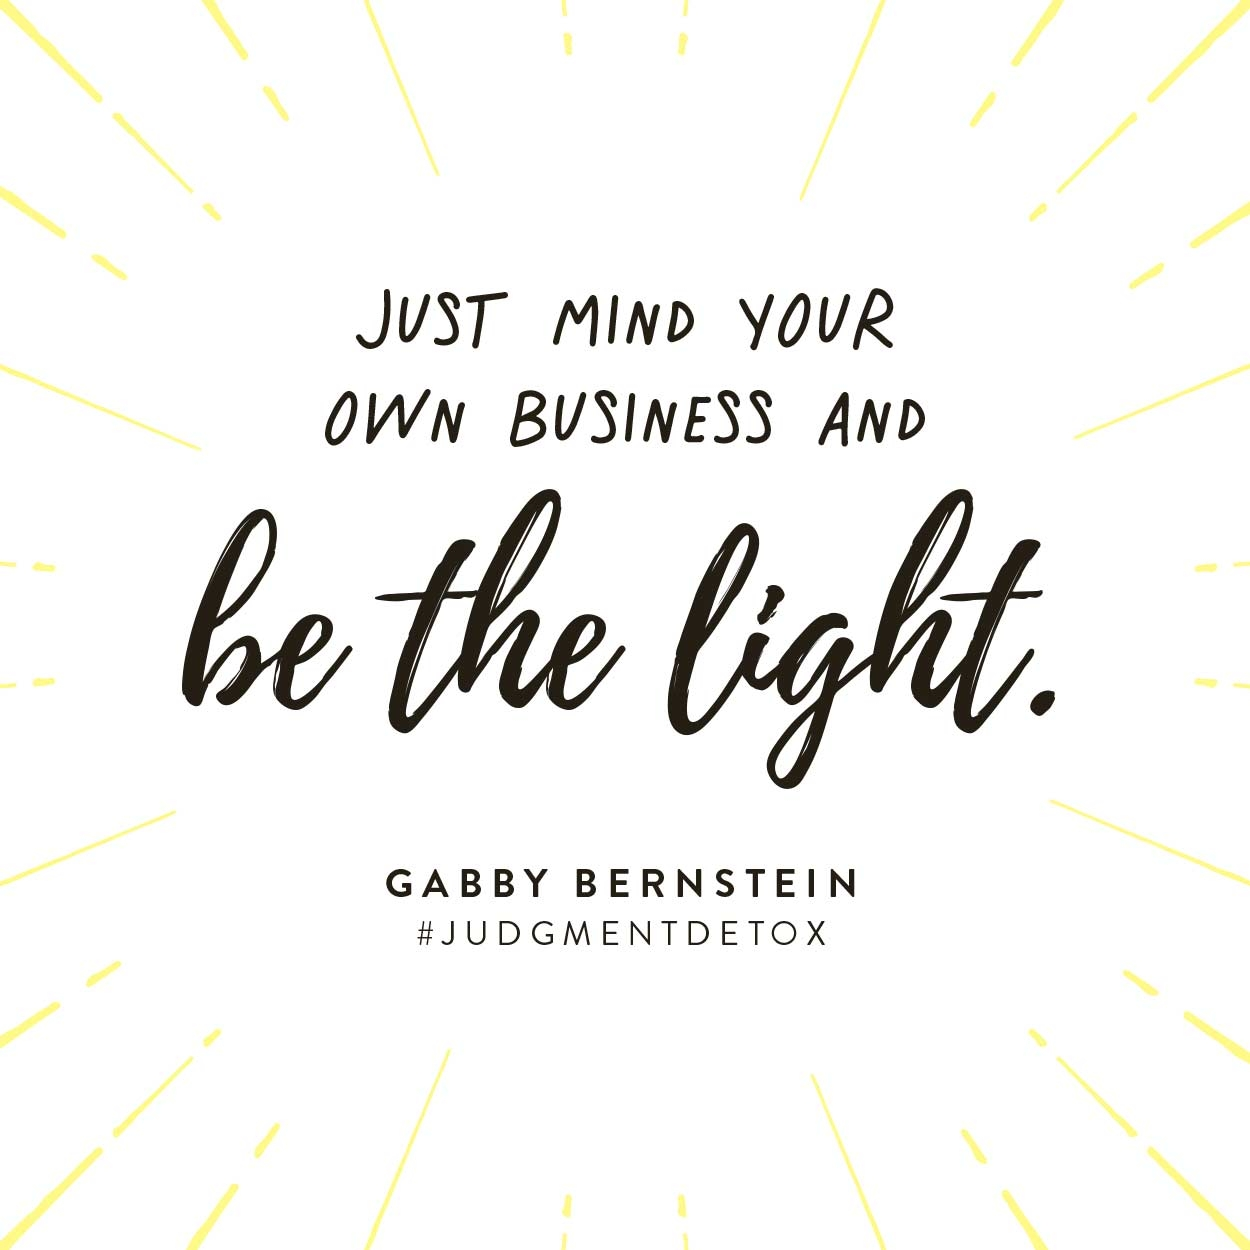 Just mind your own business and be the light. -Gabby Bernstein | Quote from Judgment Detox